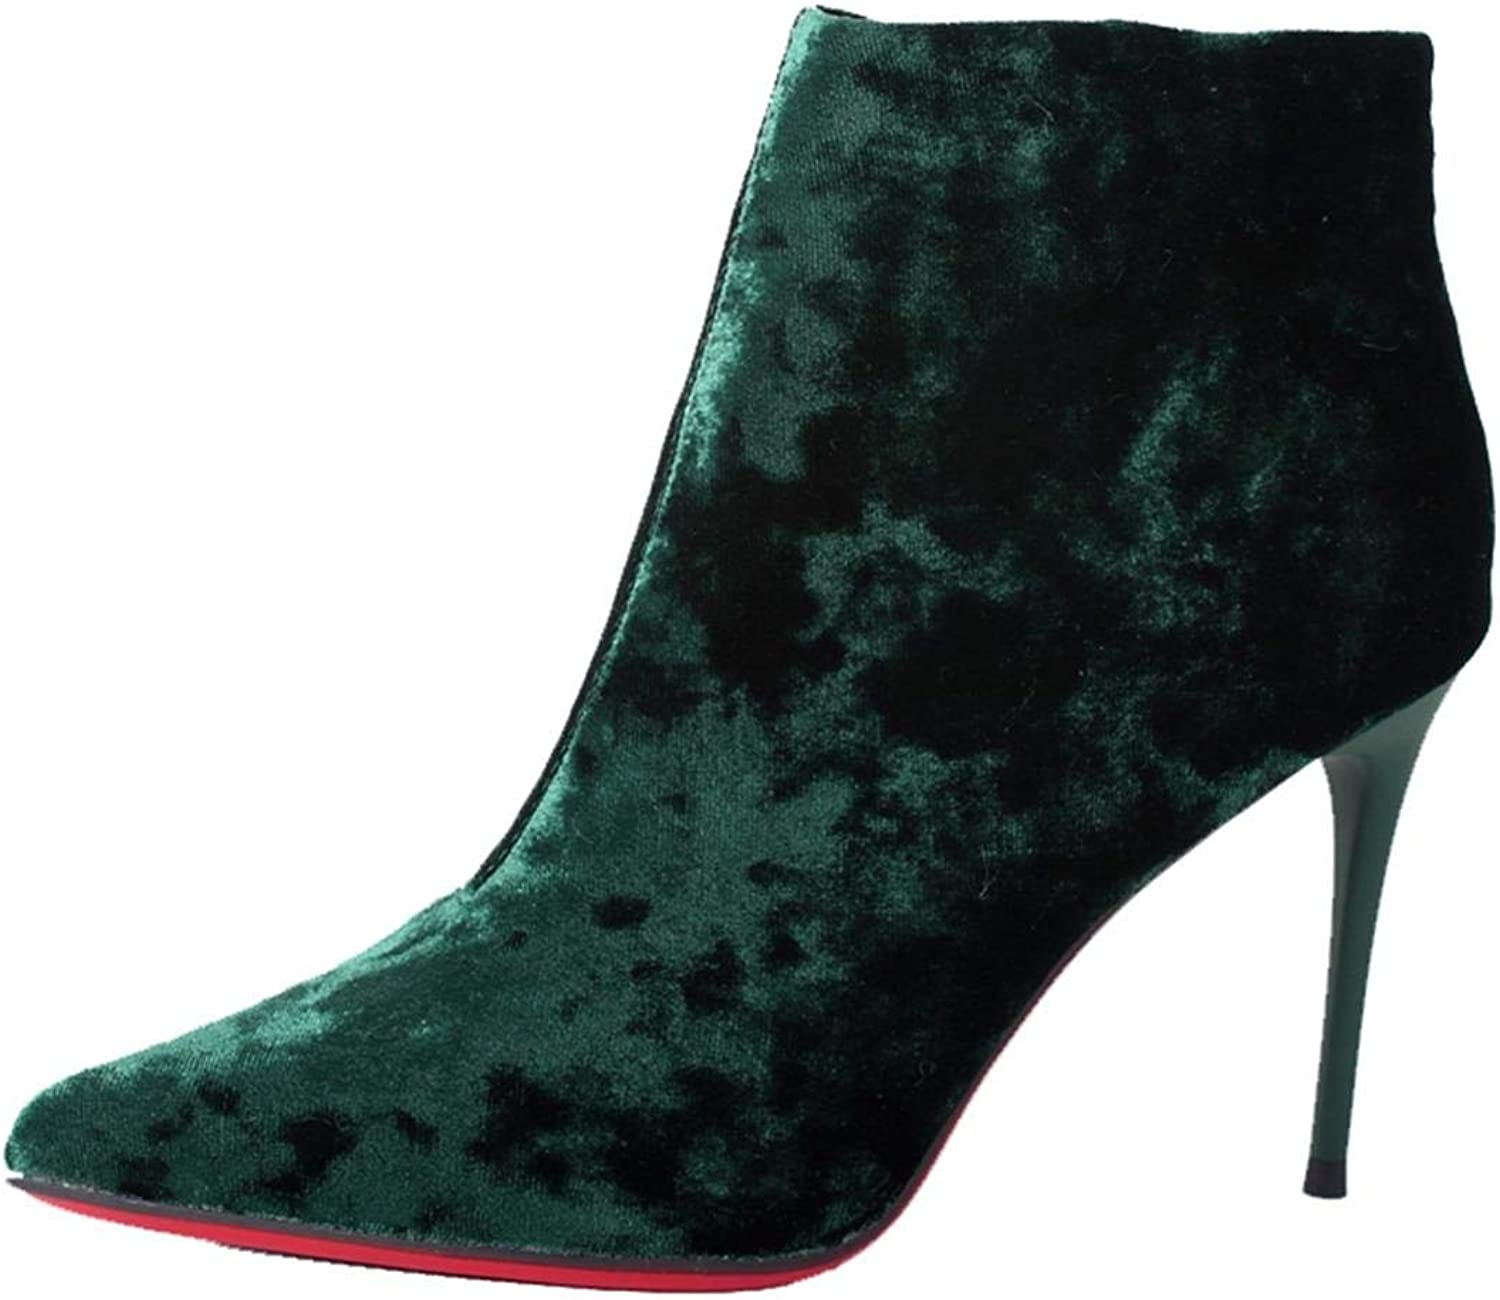 WSKEISP Womens Retro Floral Pointed Toe Side Zip Ankle Booties Stiletto High Heel Boot shoes